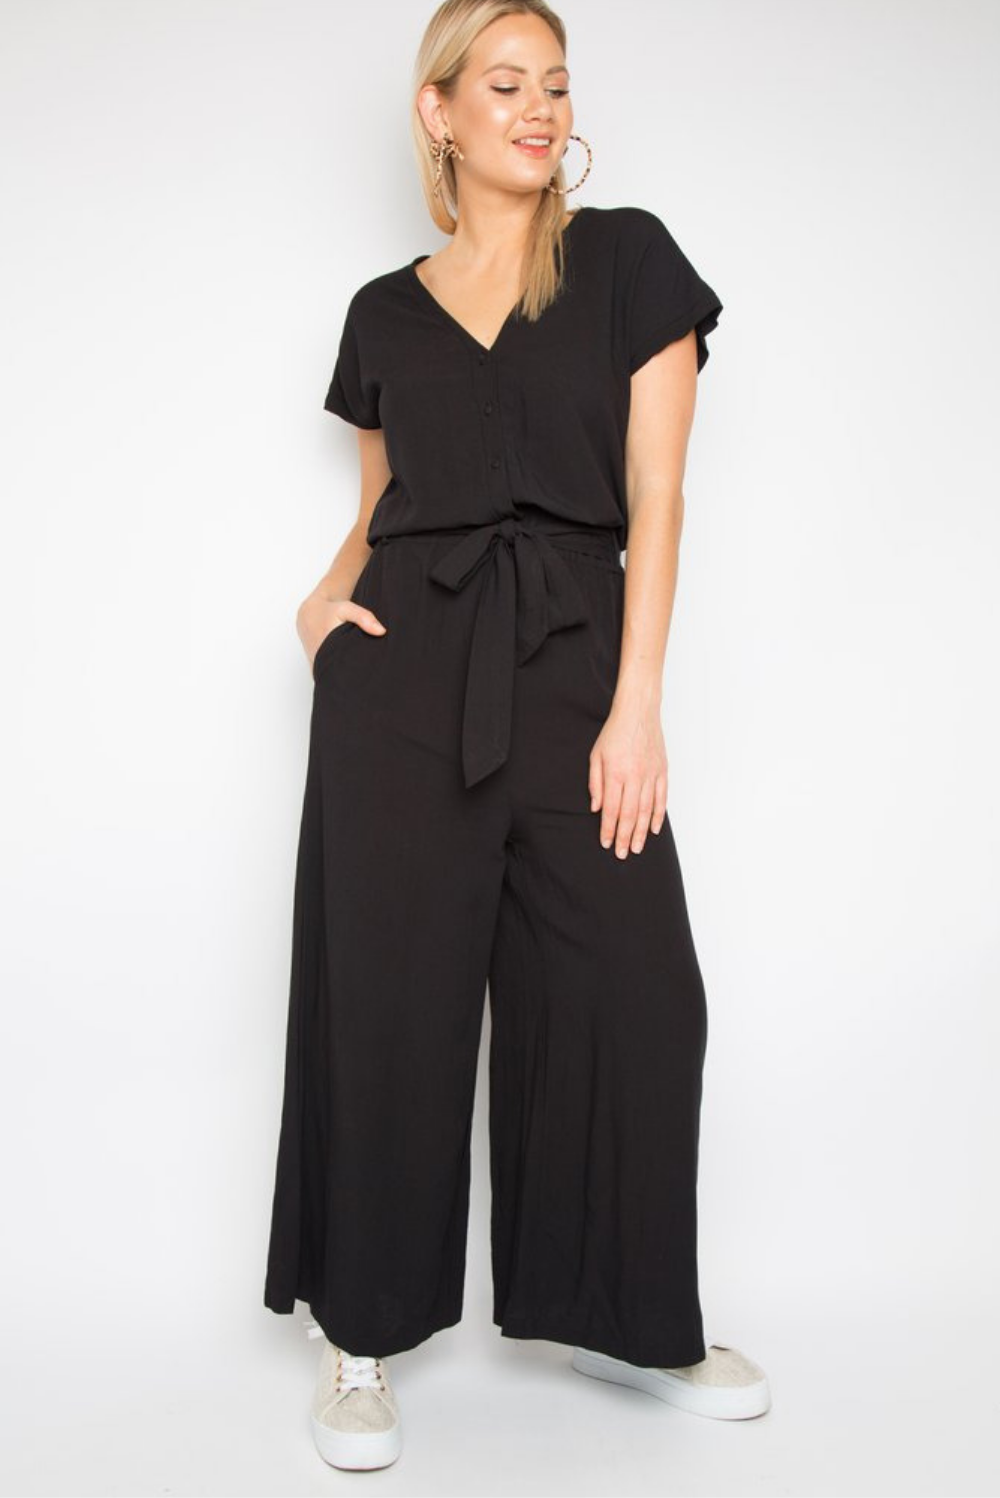 RO Paris Jumpsuit In Black